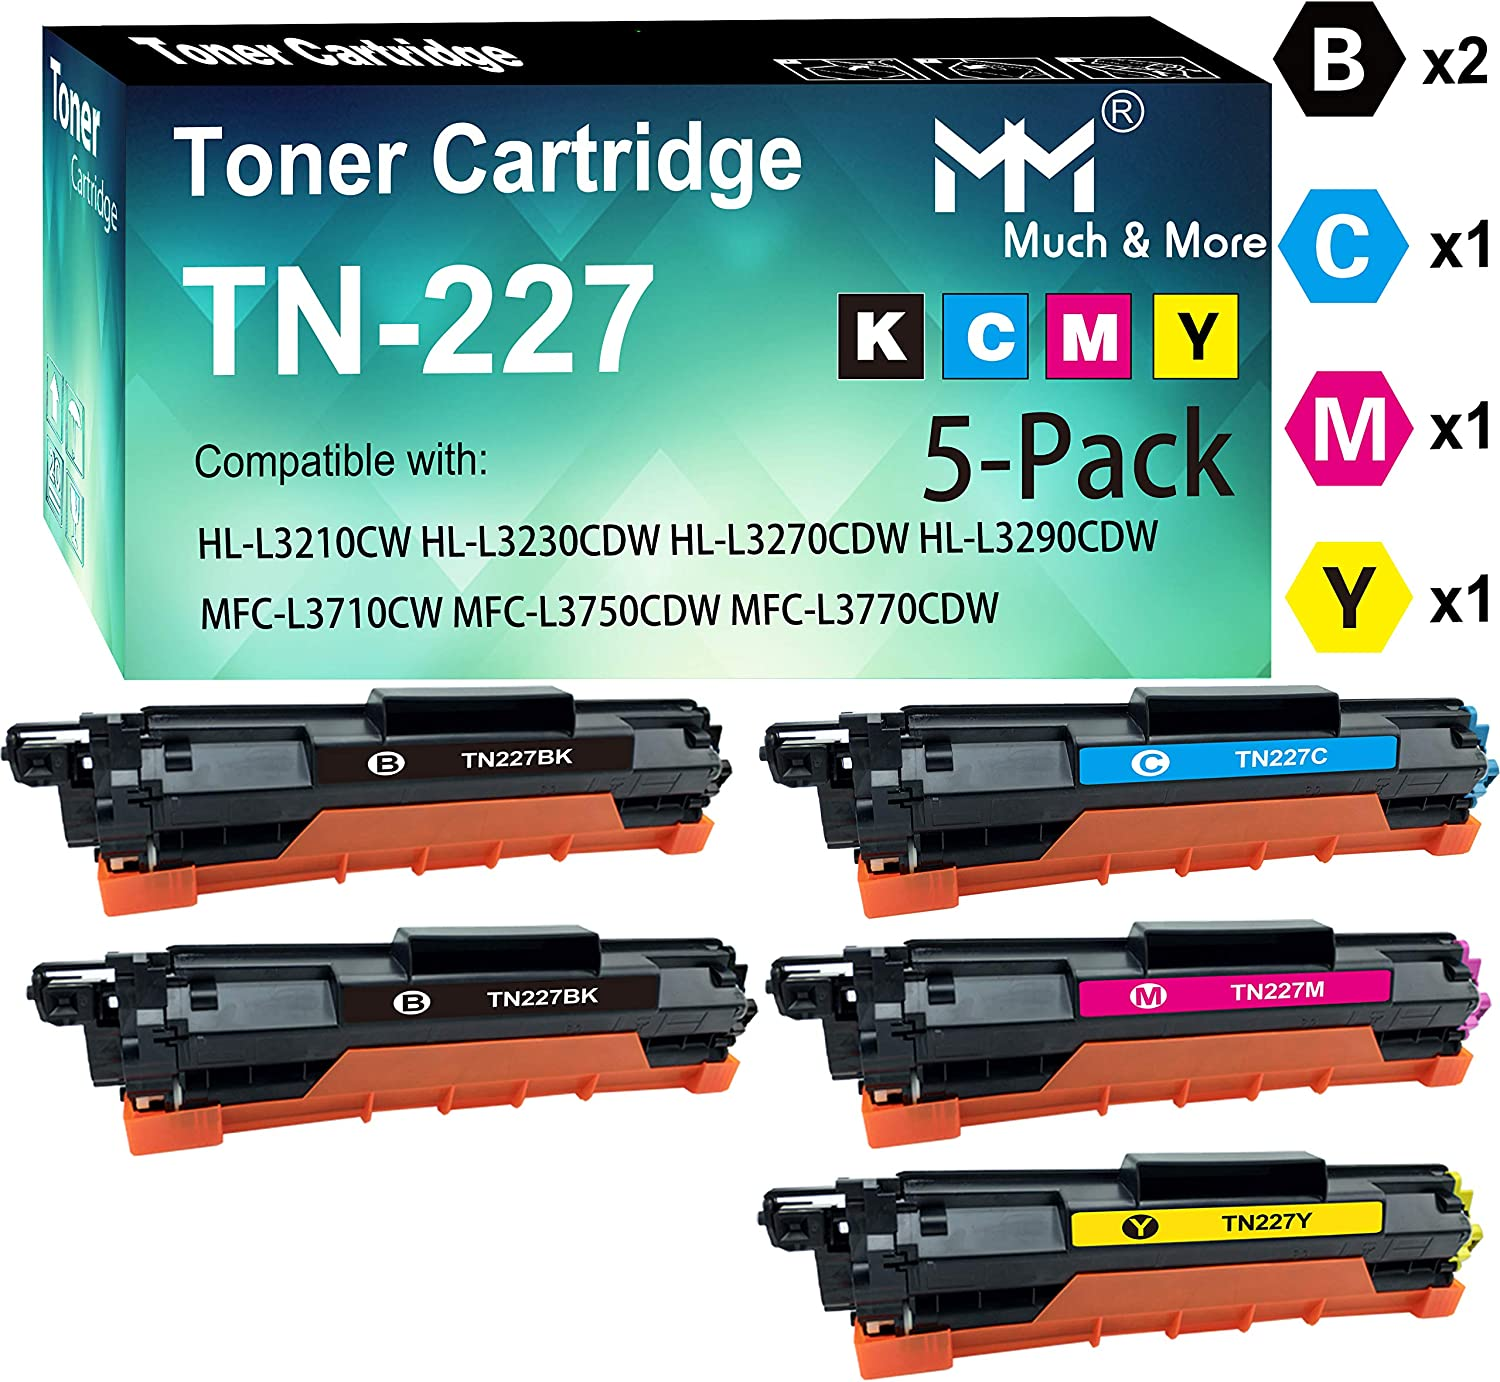 2X BK+C+M+Y, High Yield by MoreMore Compatible TN227 TN-227 Toner Cartridge TN-223 Used for MFC-L3710CW L3750CDW L3770CDW HL-L3210CW L3230CDW L3270CDW L3290CDW Printer 5-Pack